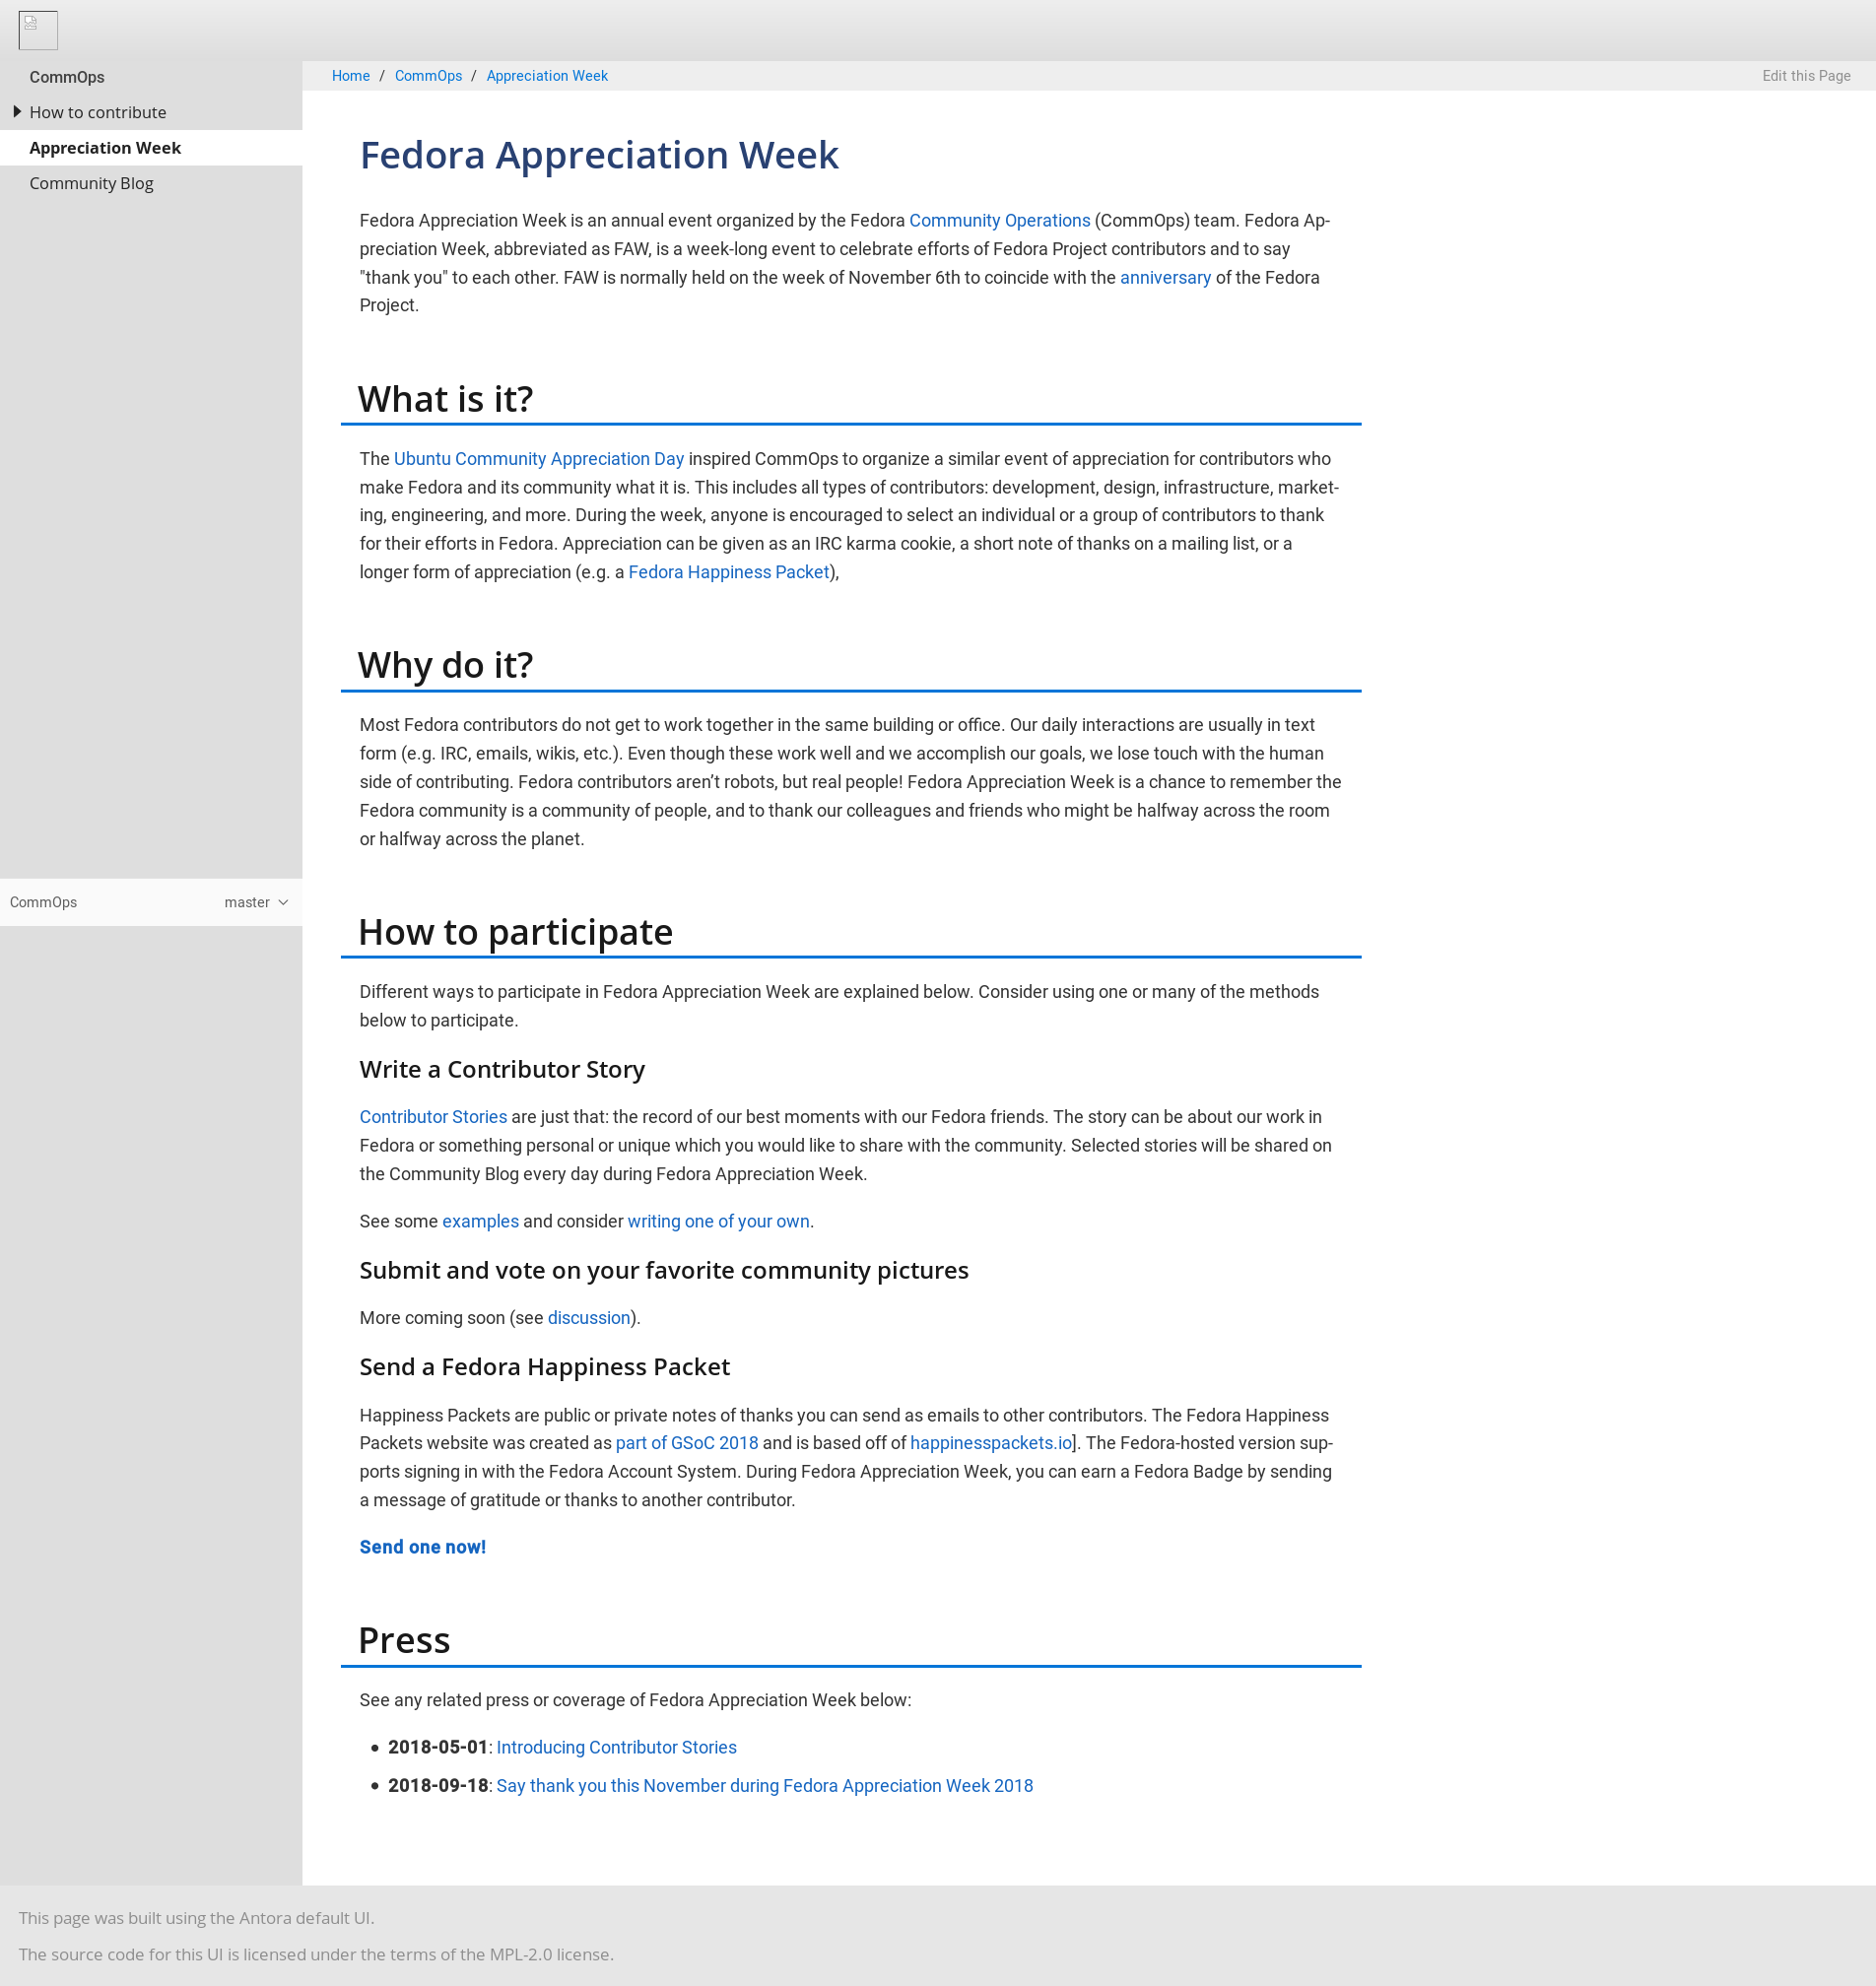 Local preview of Fedora Appreciation Week docs page